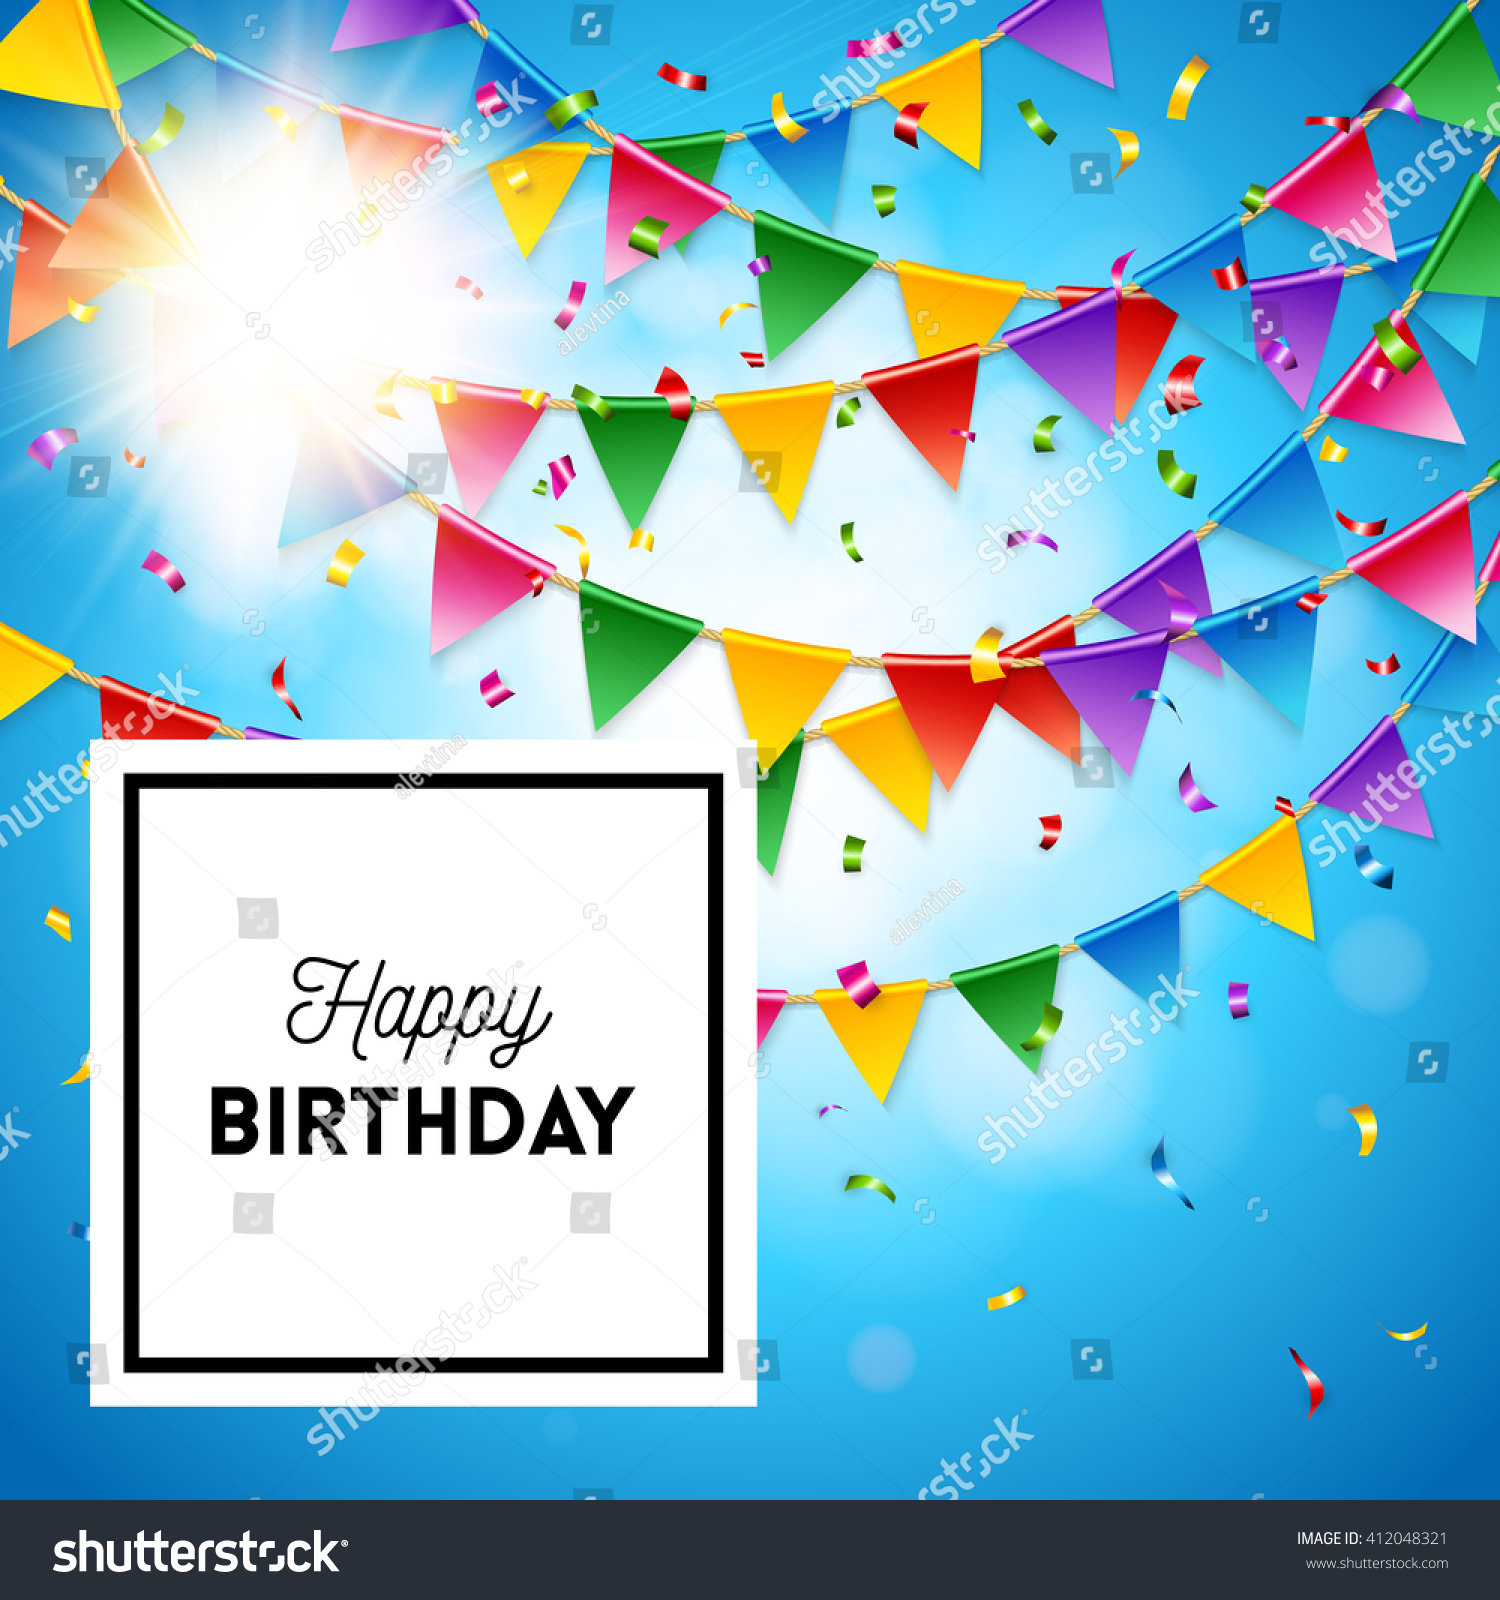 Vector bunting flags lovely celebration card with colorful paper - Full Frame Happy Birthday Card Or Announcement Stationery Template With Red Blue Purple